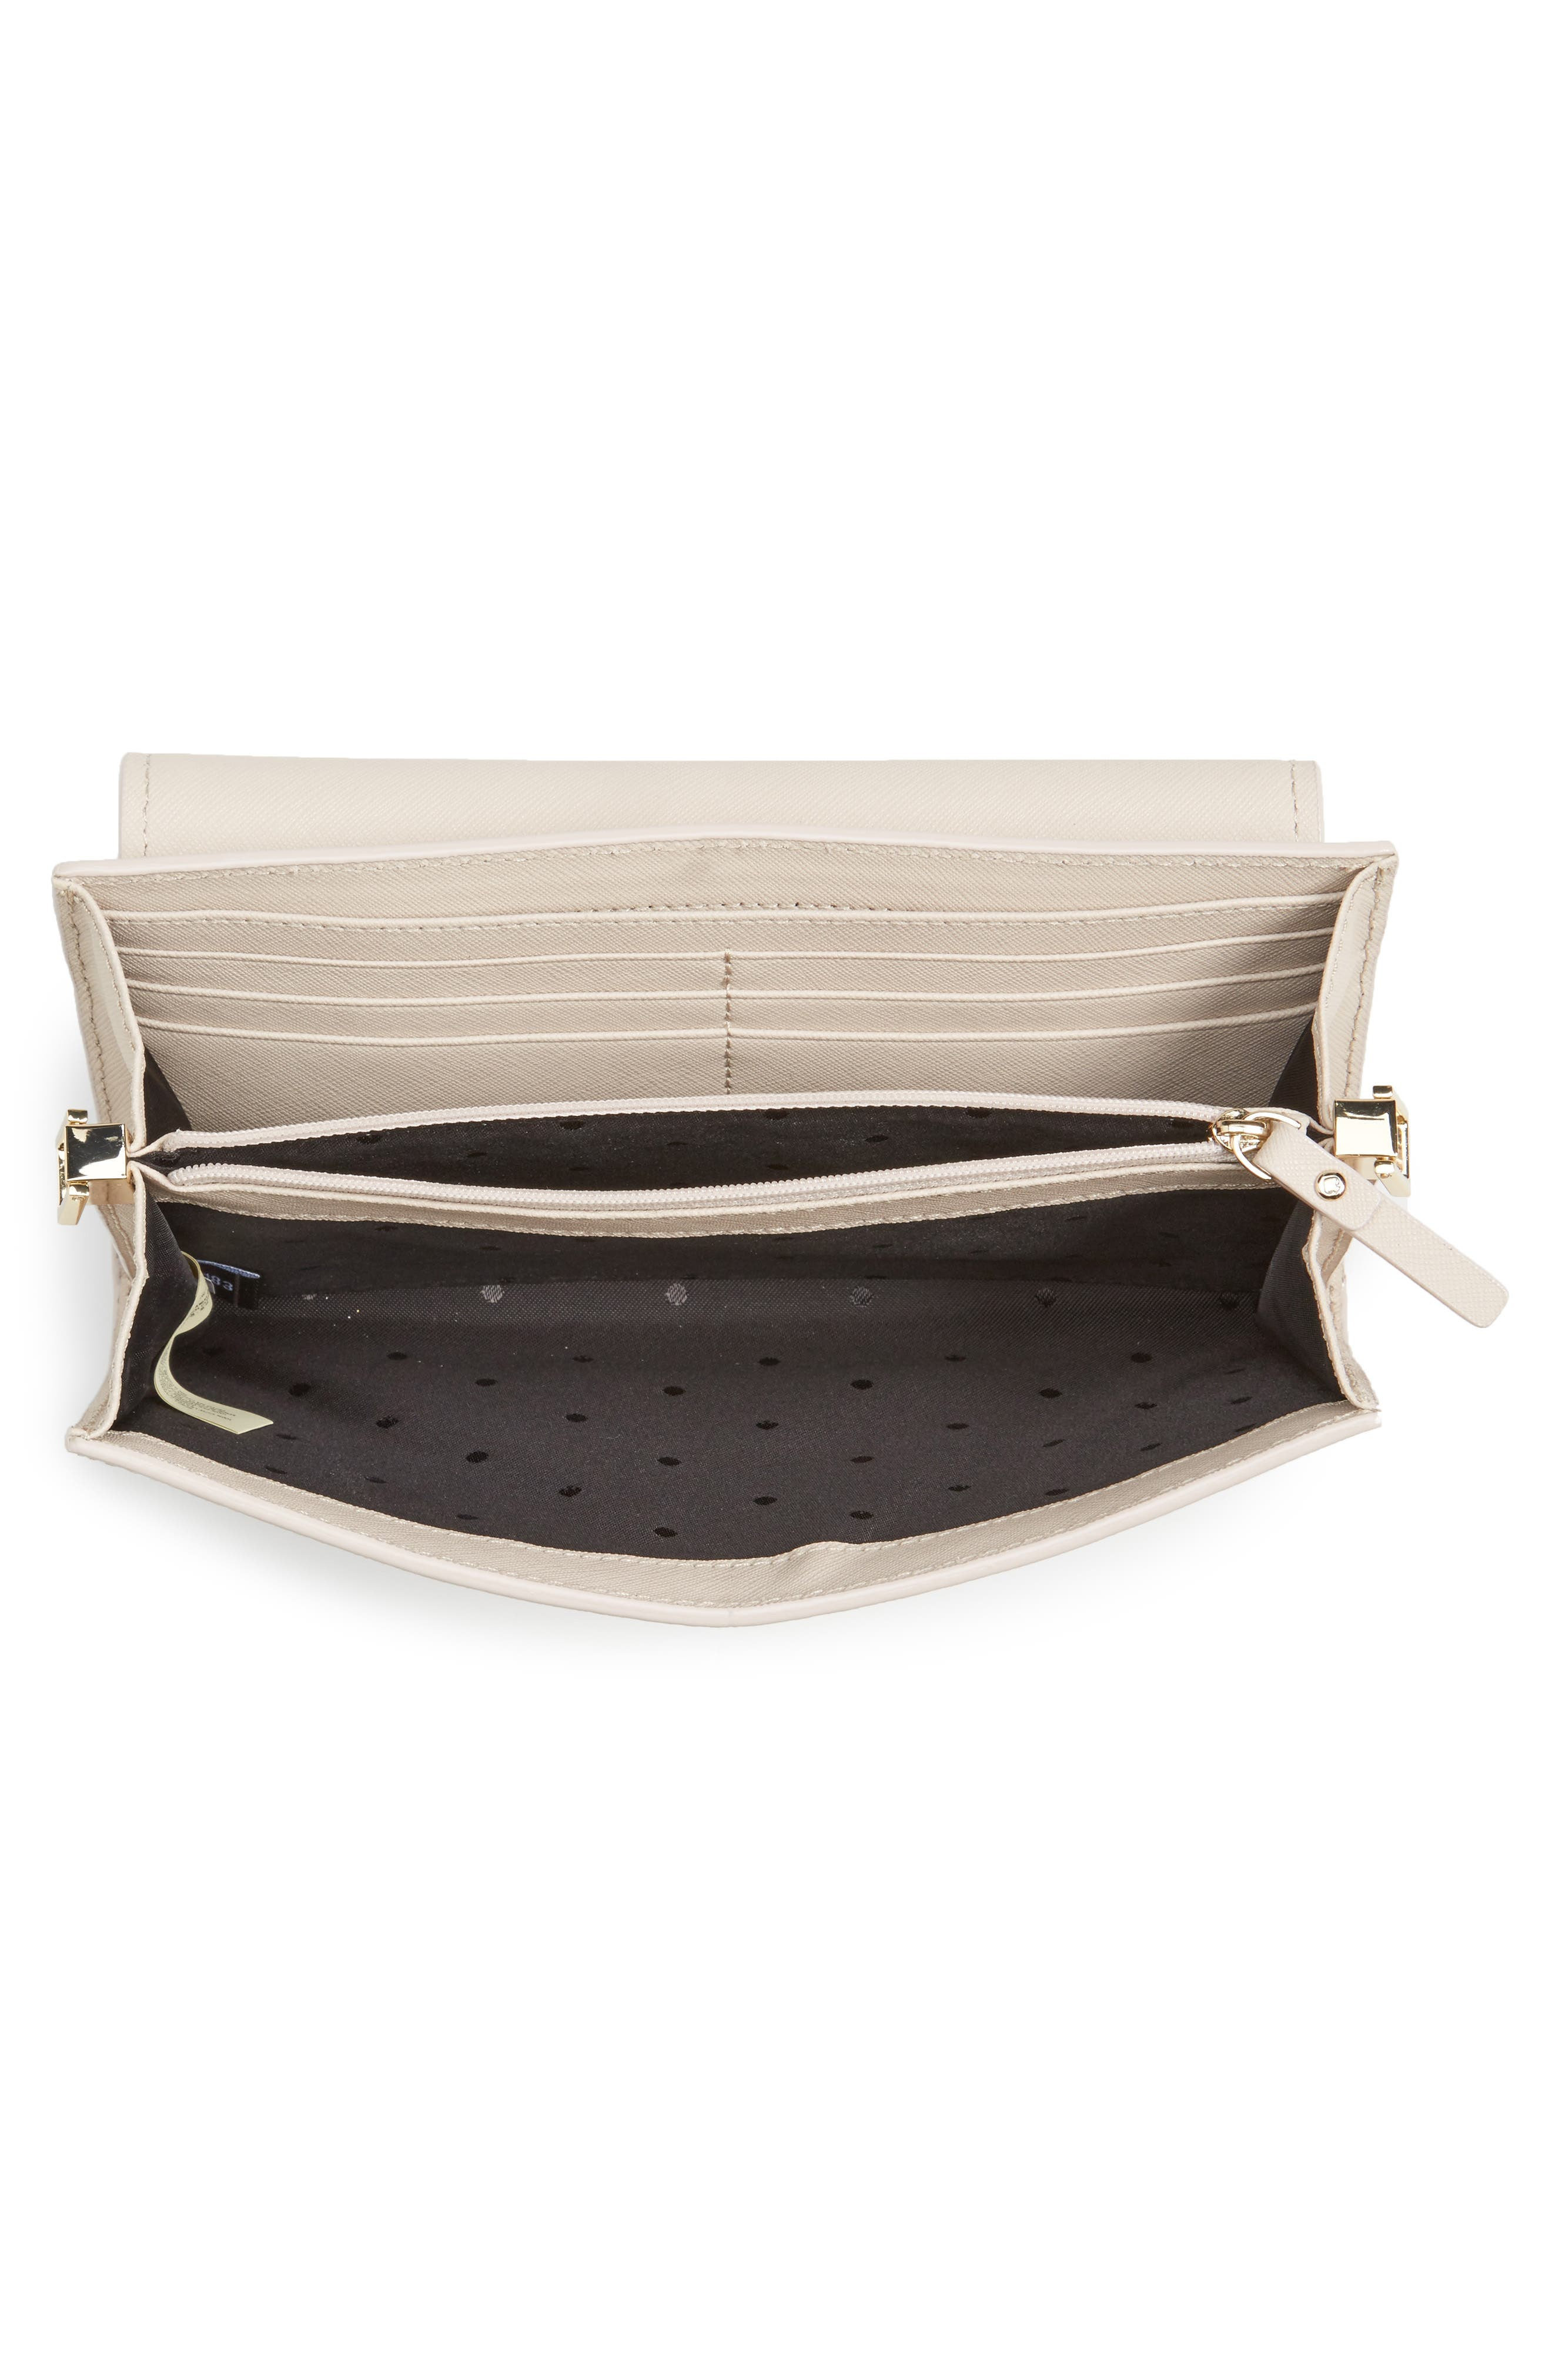 make it mine - camila leather clutch,                             Alternate thumbnail 8, color,